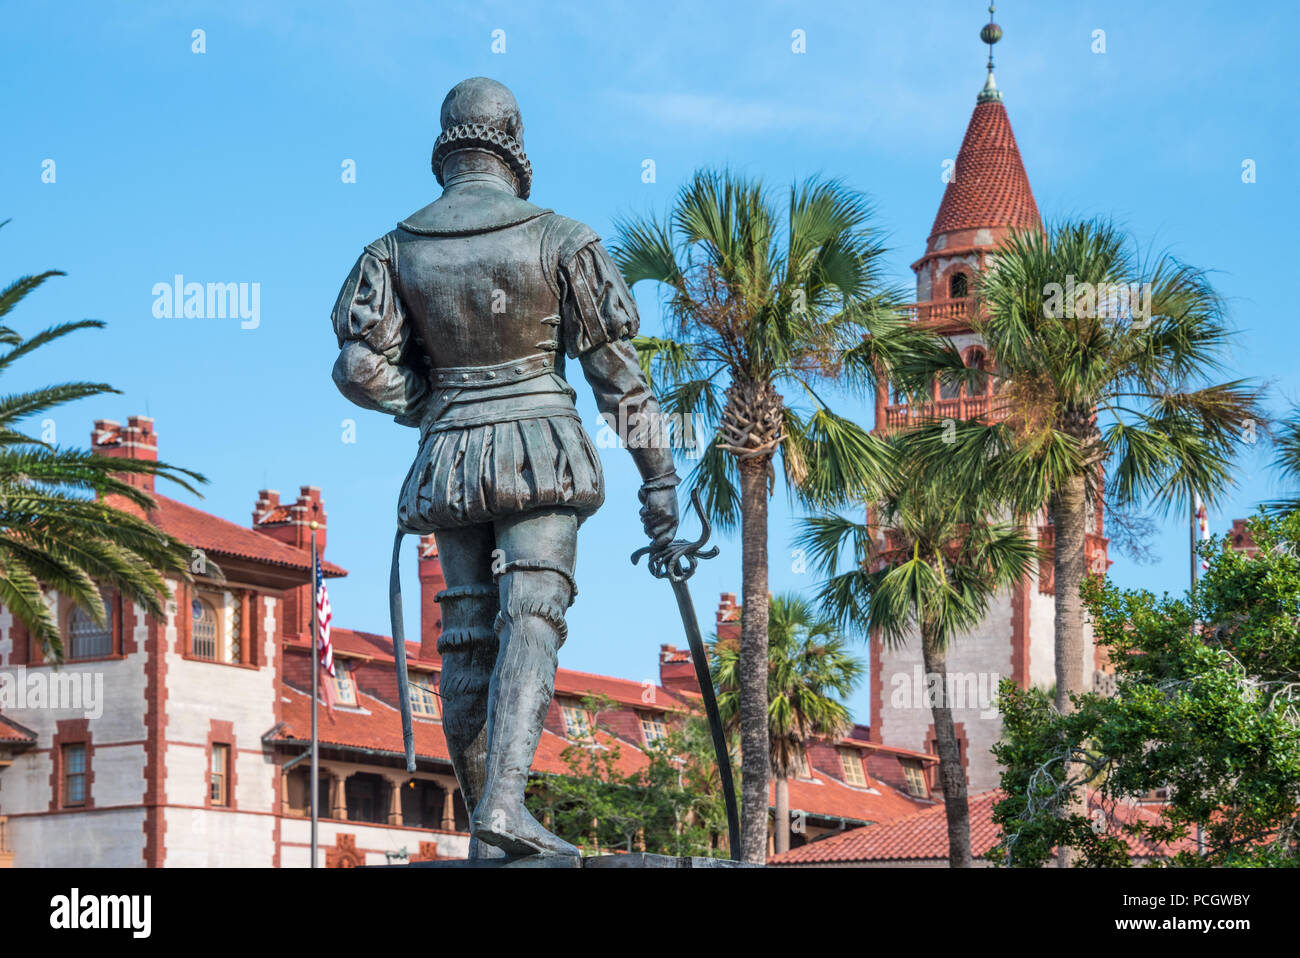 Statue of Don Pedro Menendez de Aviles (founder of St. Augustine and first Governor of Florida) facing Flagler College in St. Augustine, Florida, USA. - Stock Image